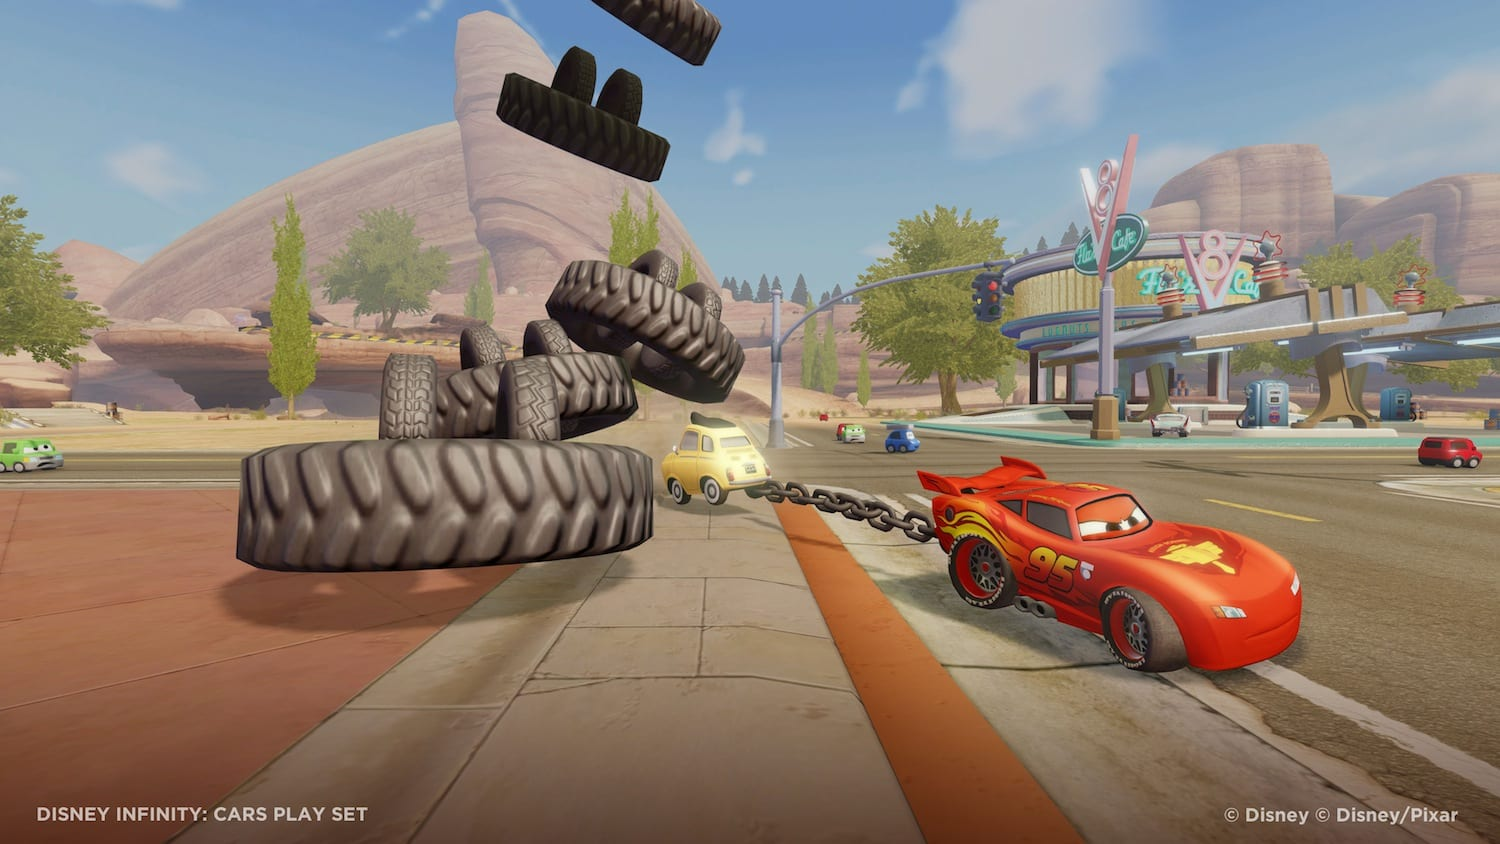 Disney Infinity Cars Playset Review